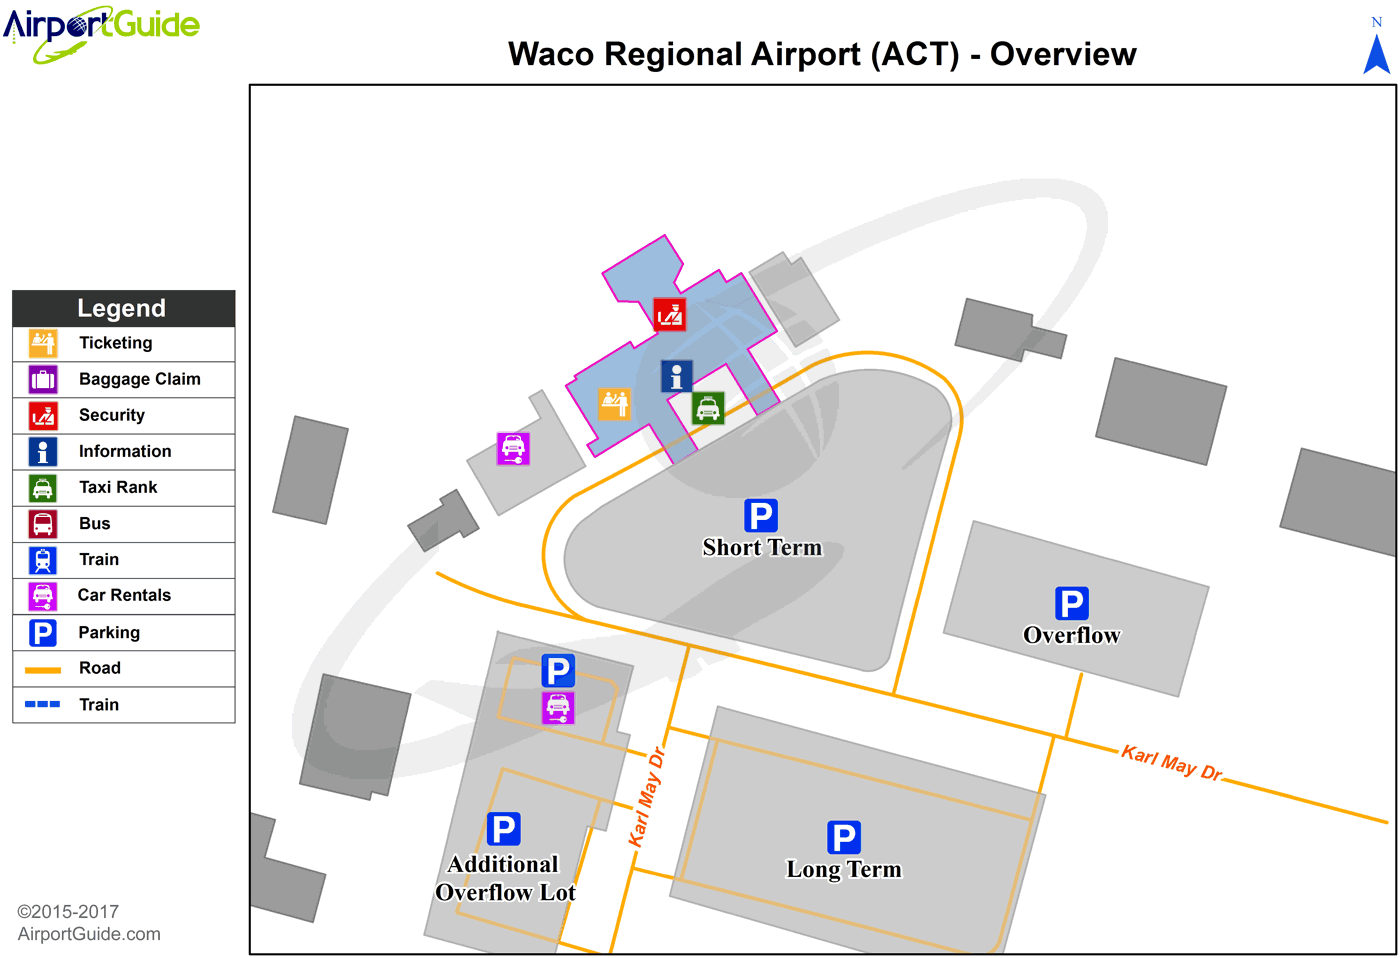 Waco - Waco Regional (ACT) Airport Terminal Map - Overview